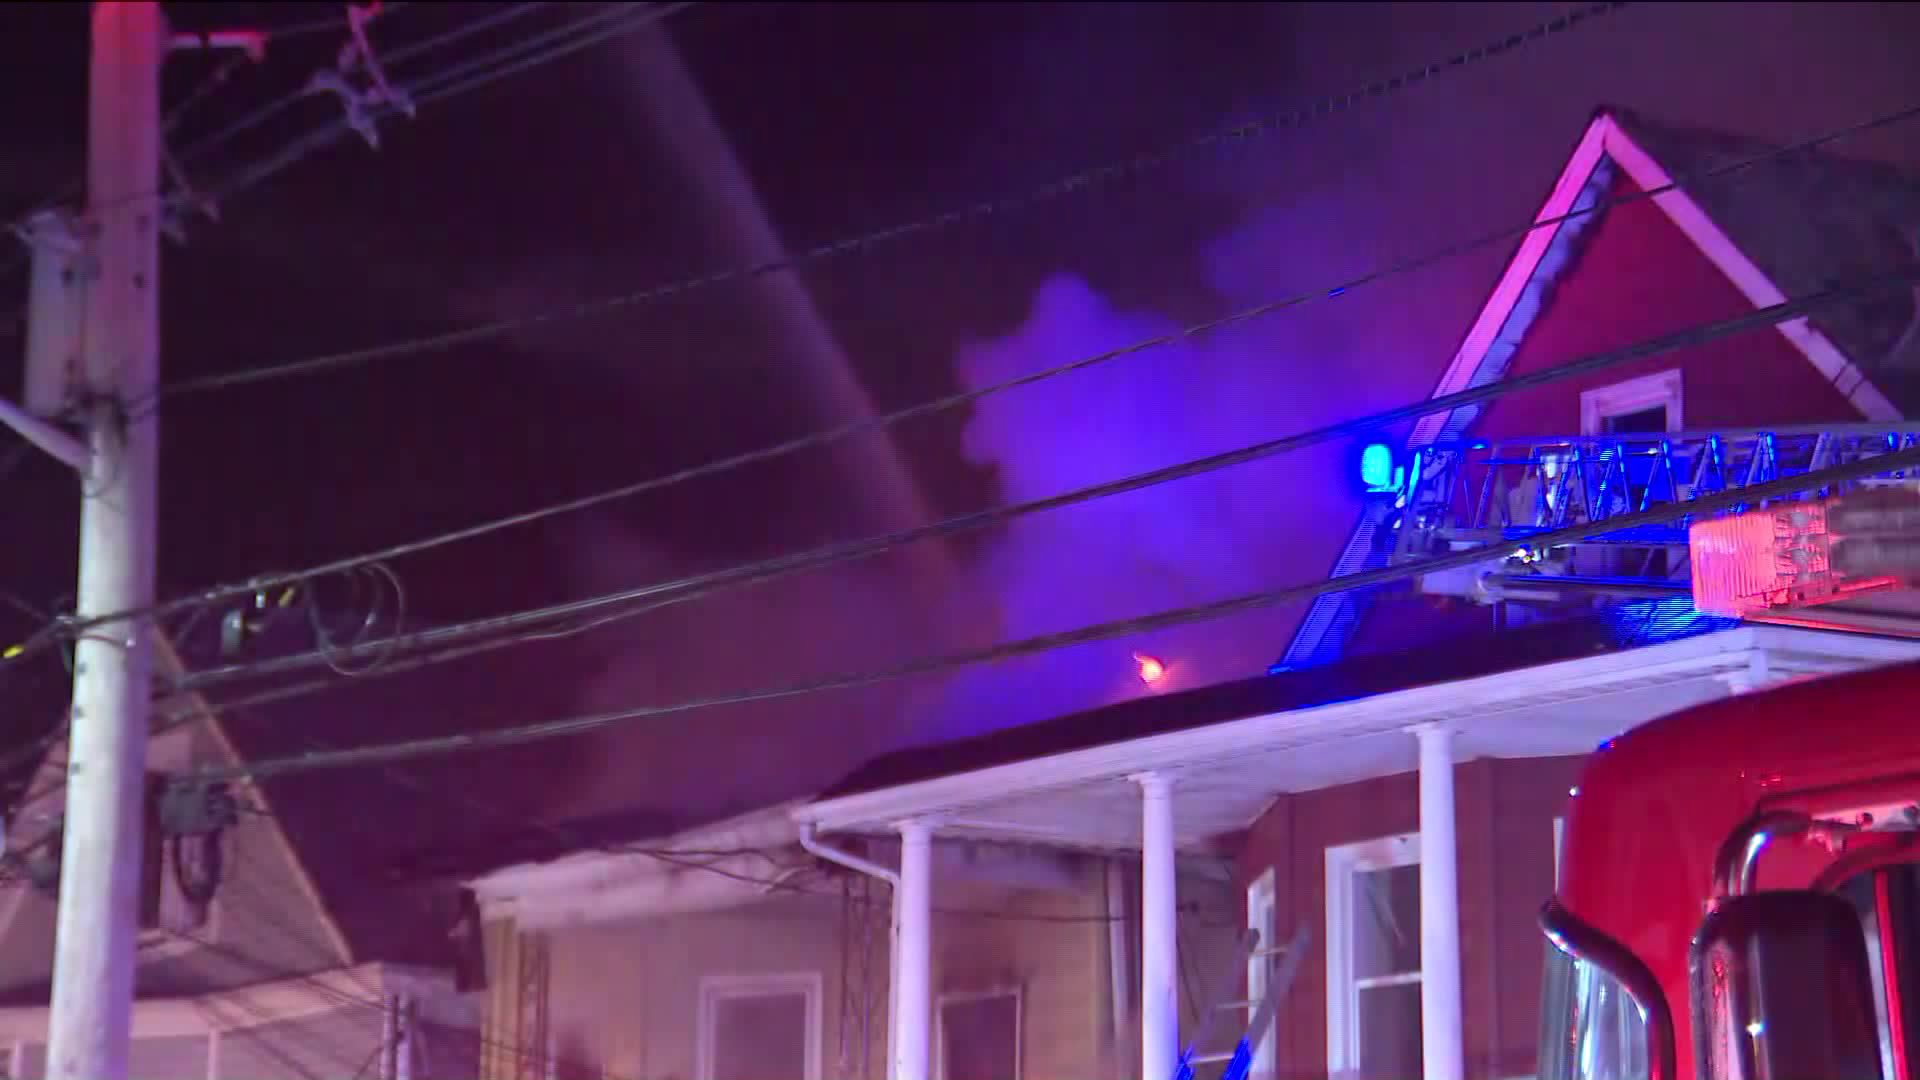 Passaic 3-alarm house fire in New Jersey